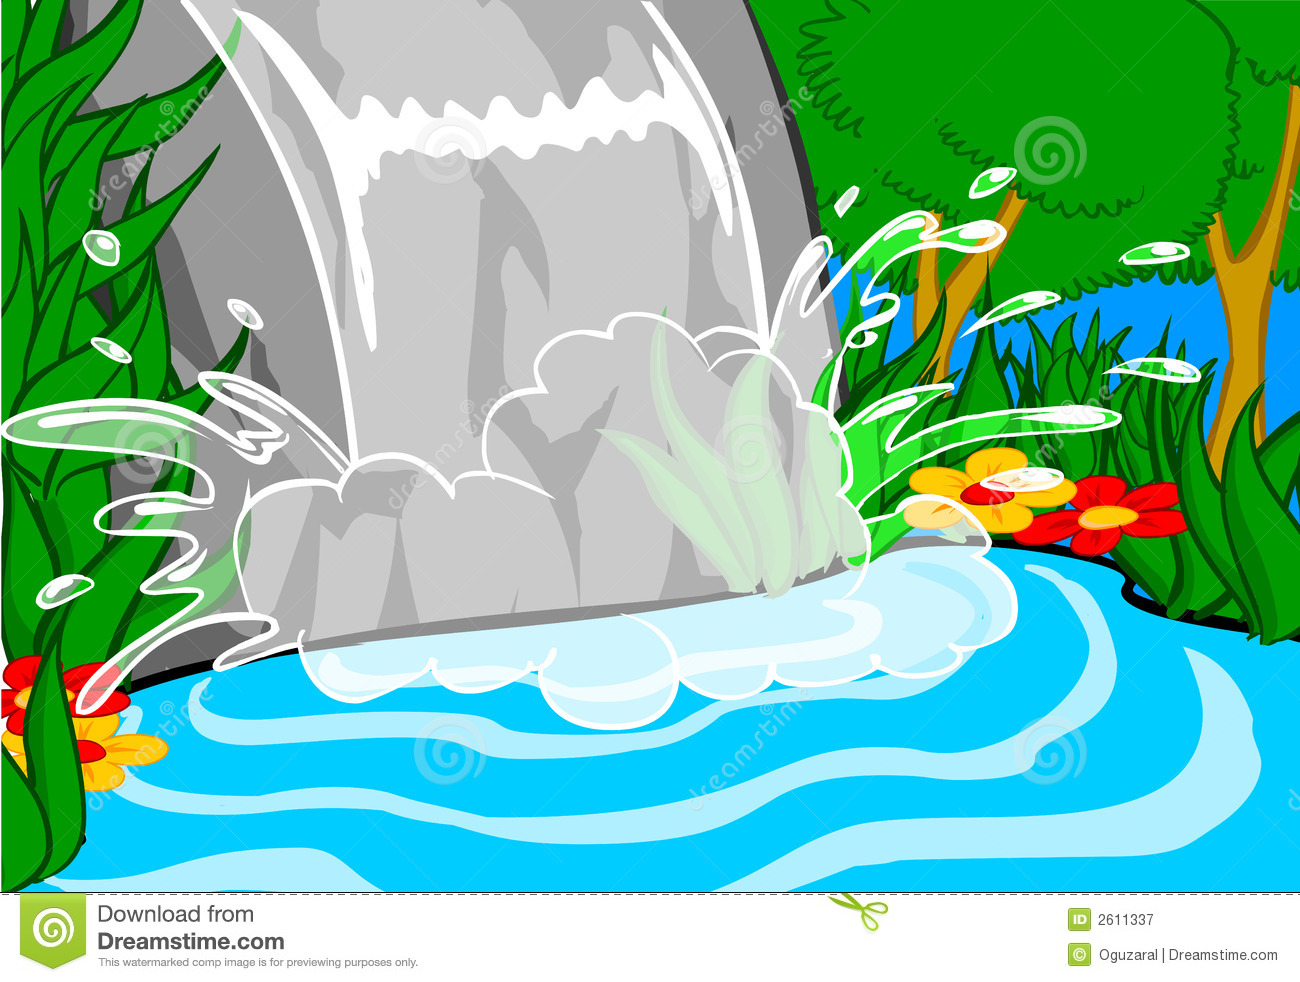 Waterfall Drawing Stock Photos, Images, & Pictures.